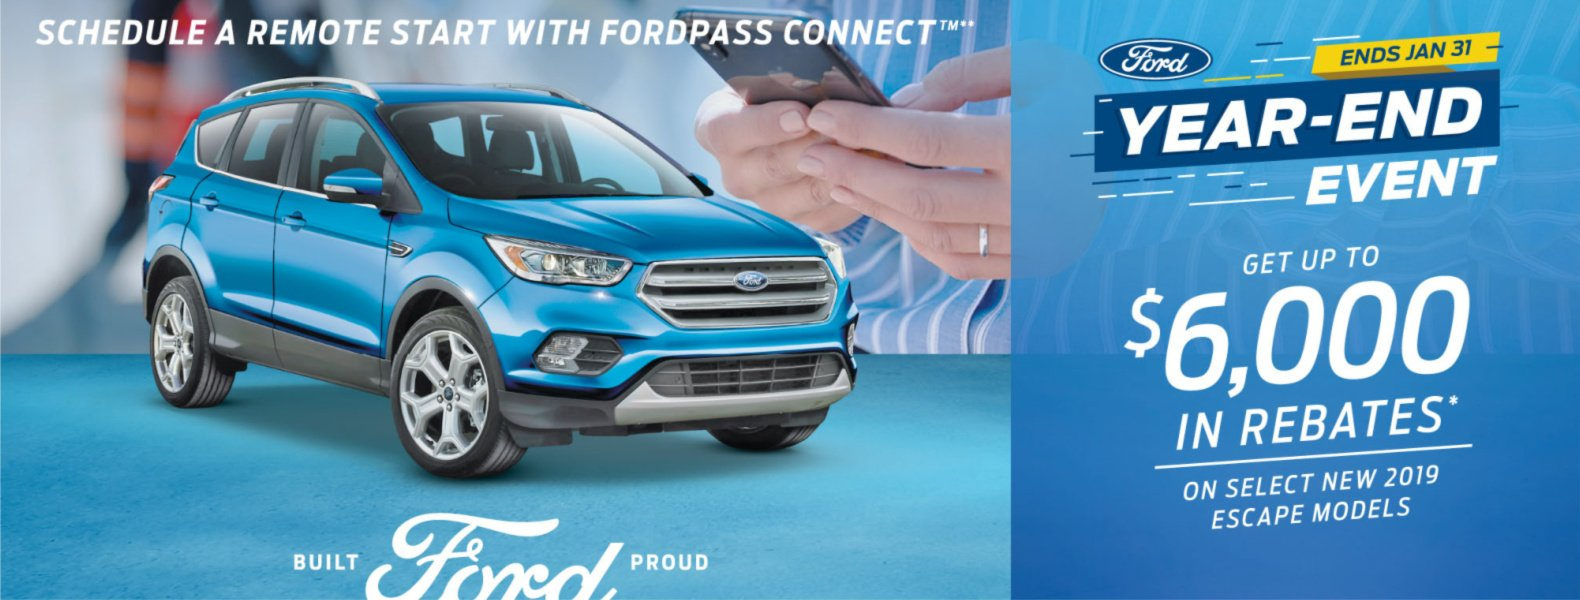 ford escape 2019 rebate